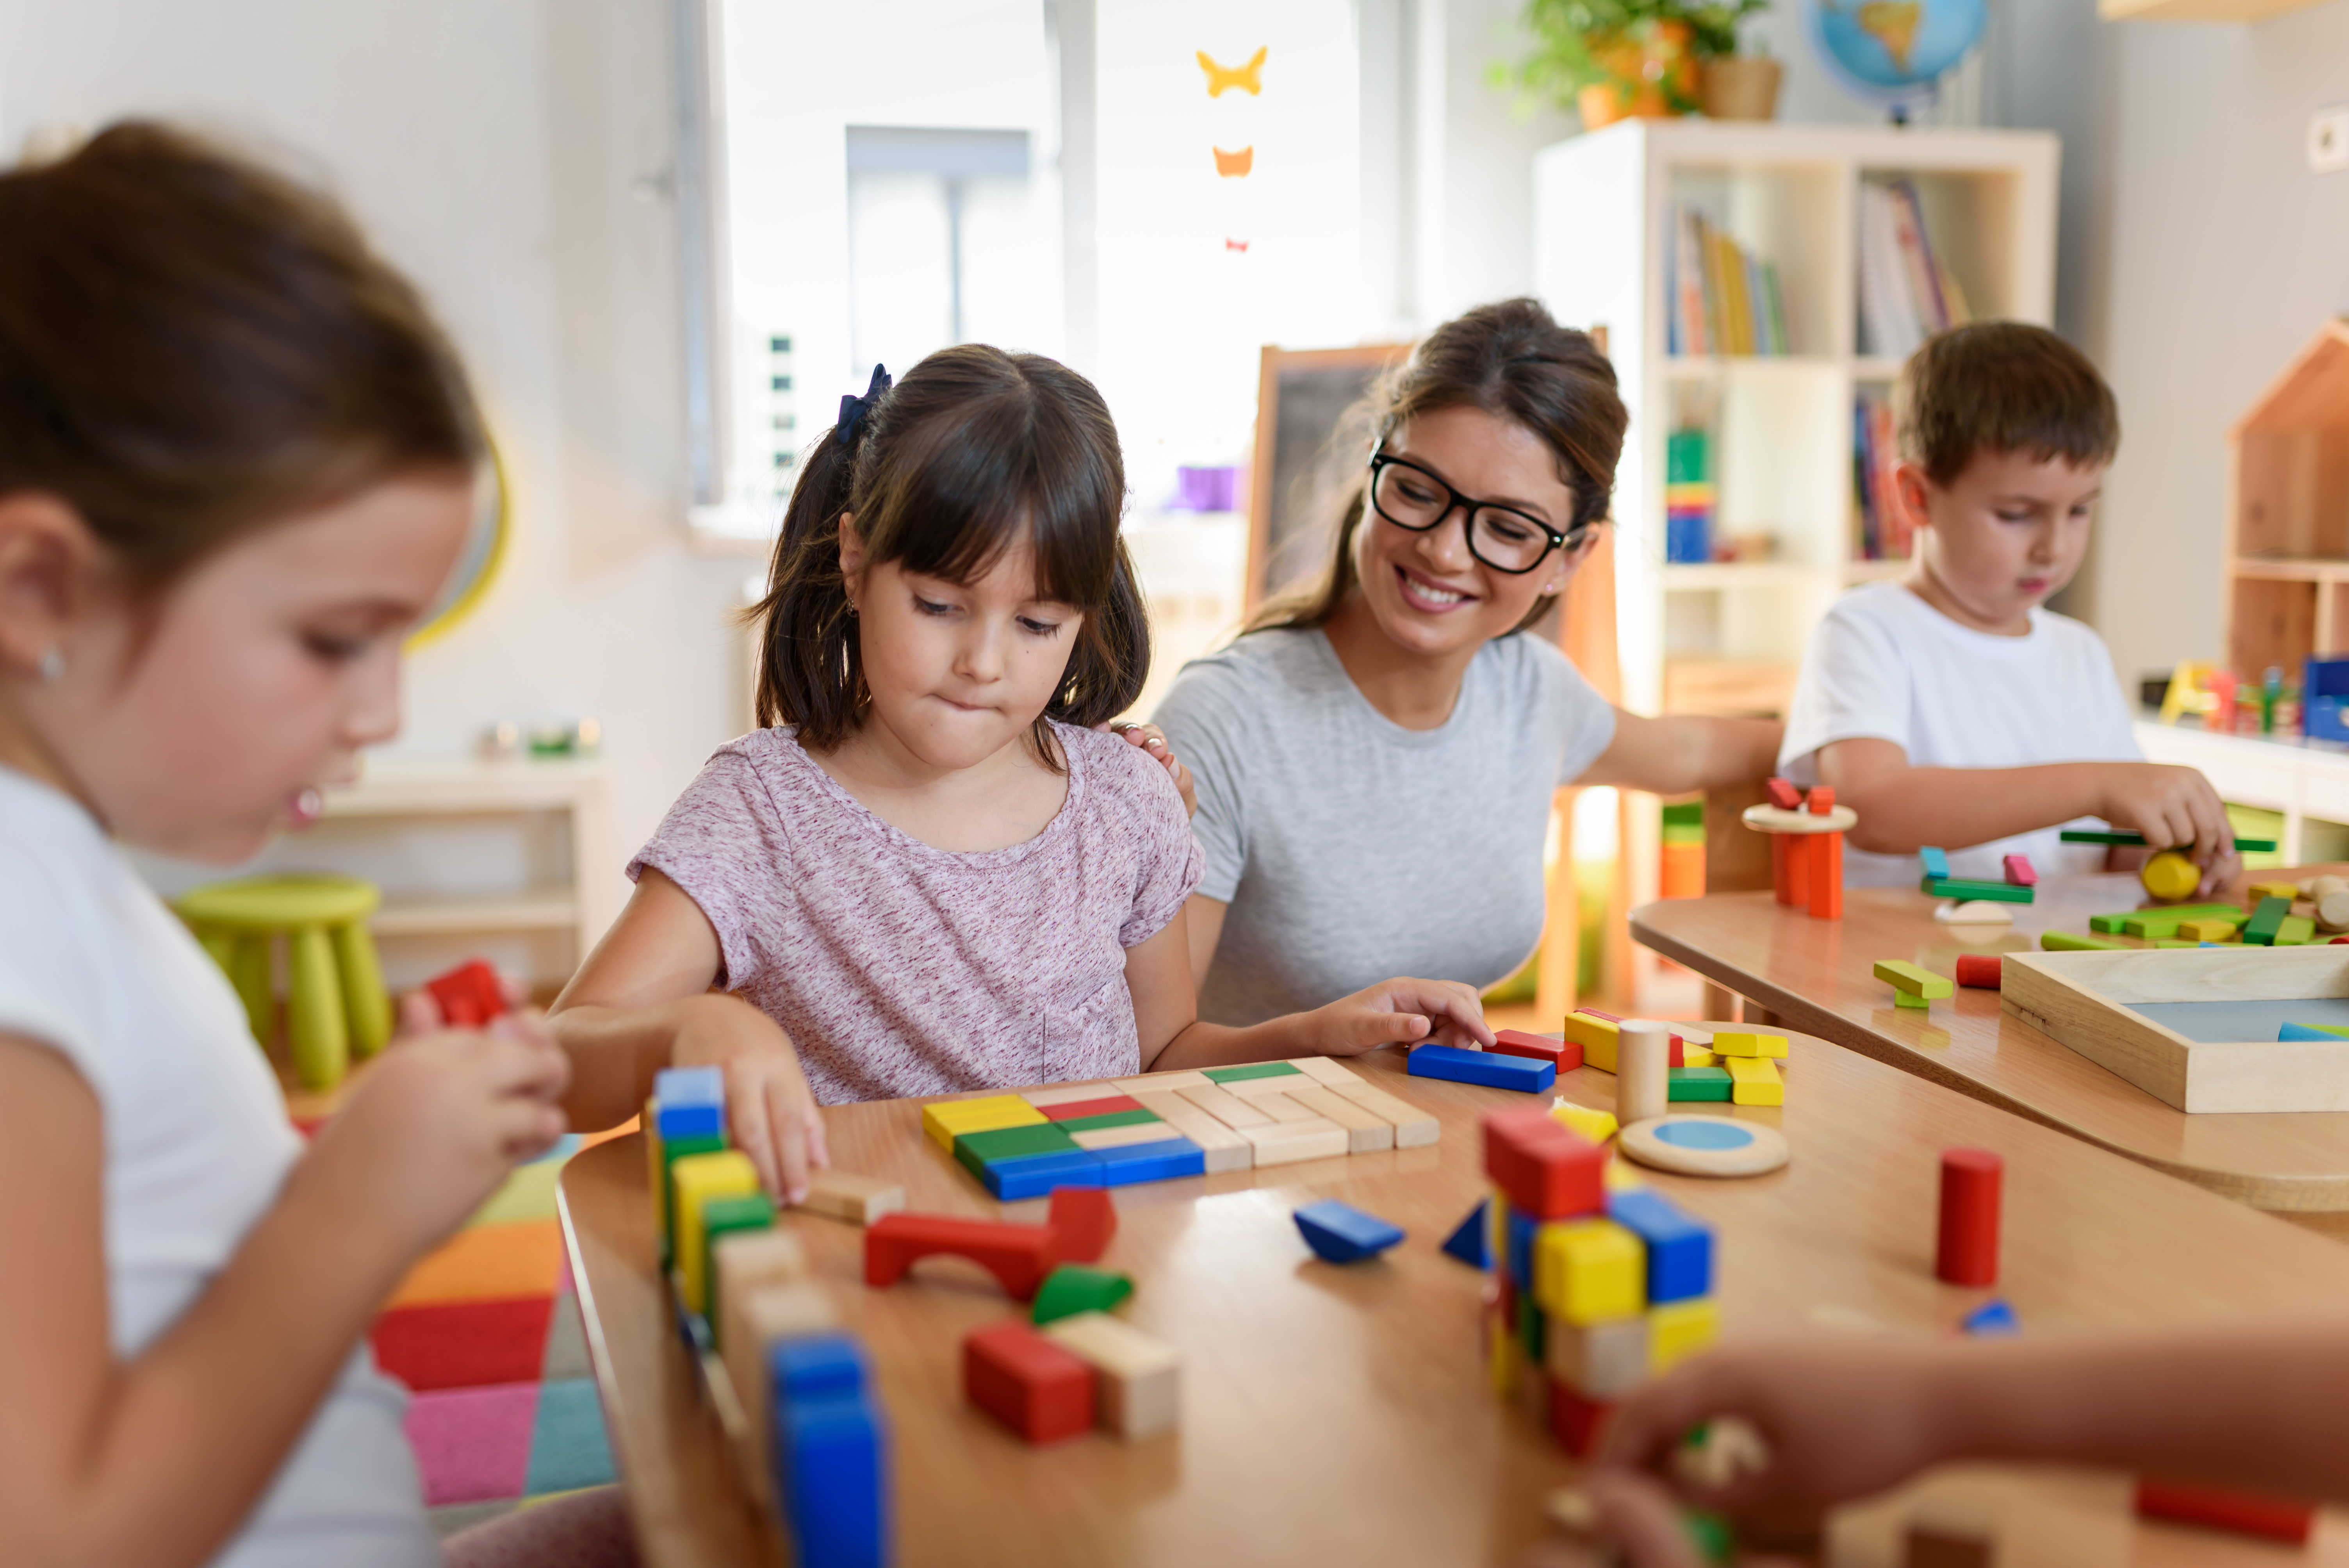 child care worker playing with toys with students